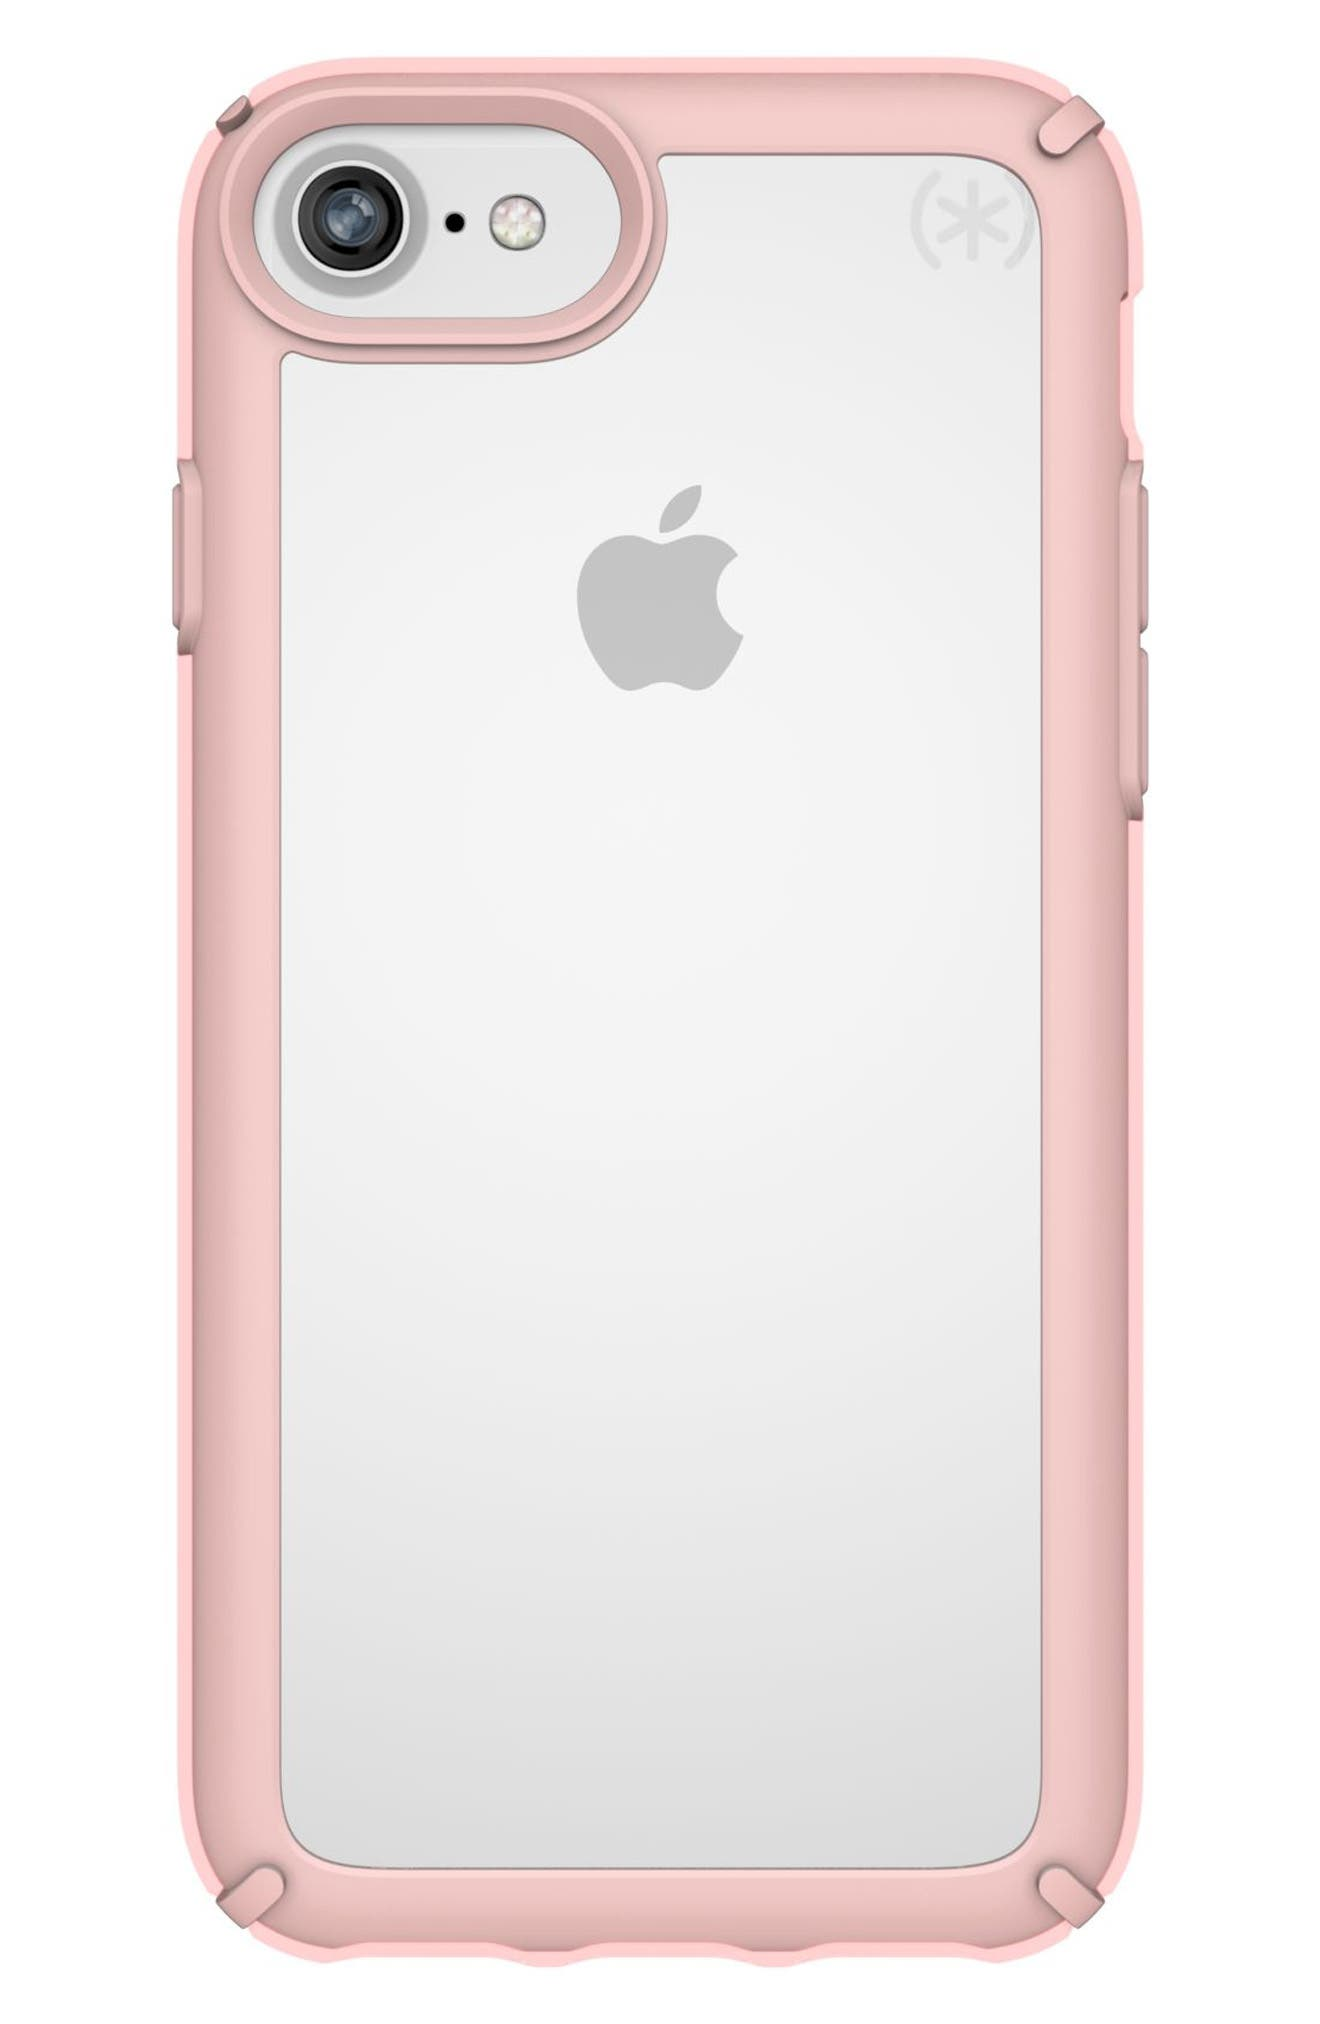 Speck Transparent iPhone 6/6s/7/8 Case